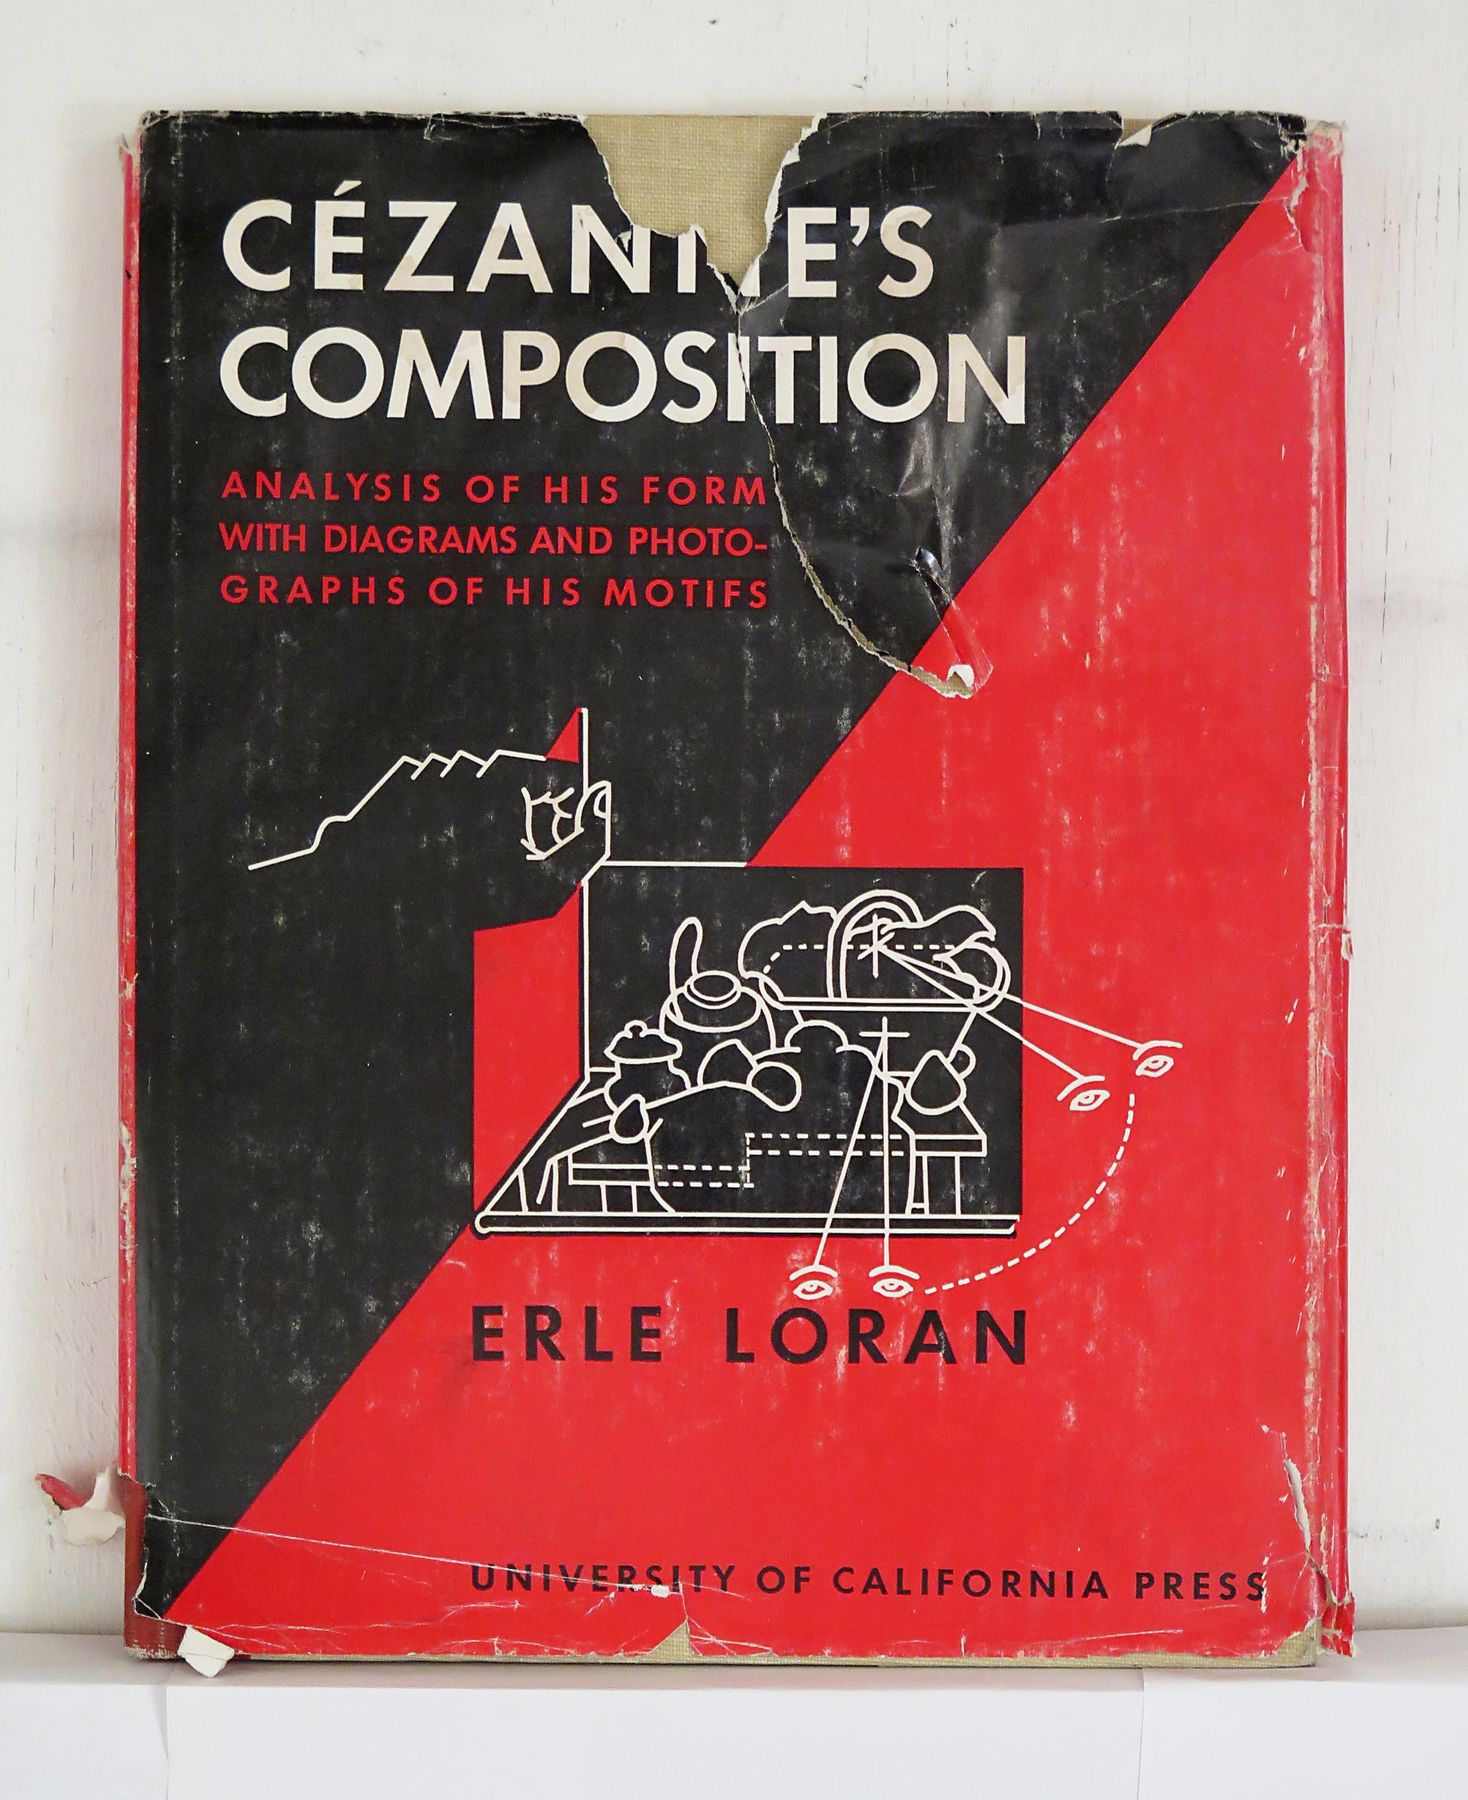 Cezannes composition analysis of his form with diagrams and cezannes composition analysis of his form with diagrams and photographs of his motifs erle compositionbook jacketbook ccuart